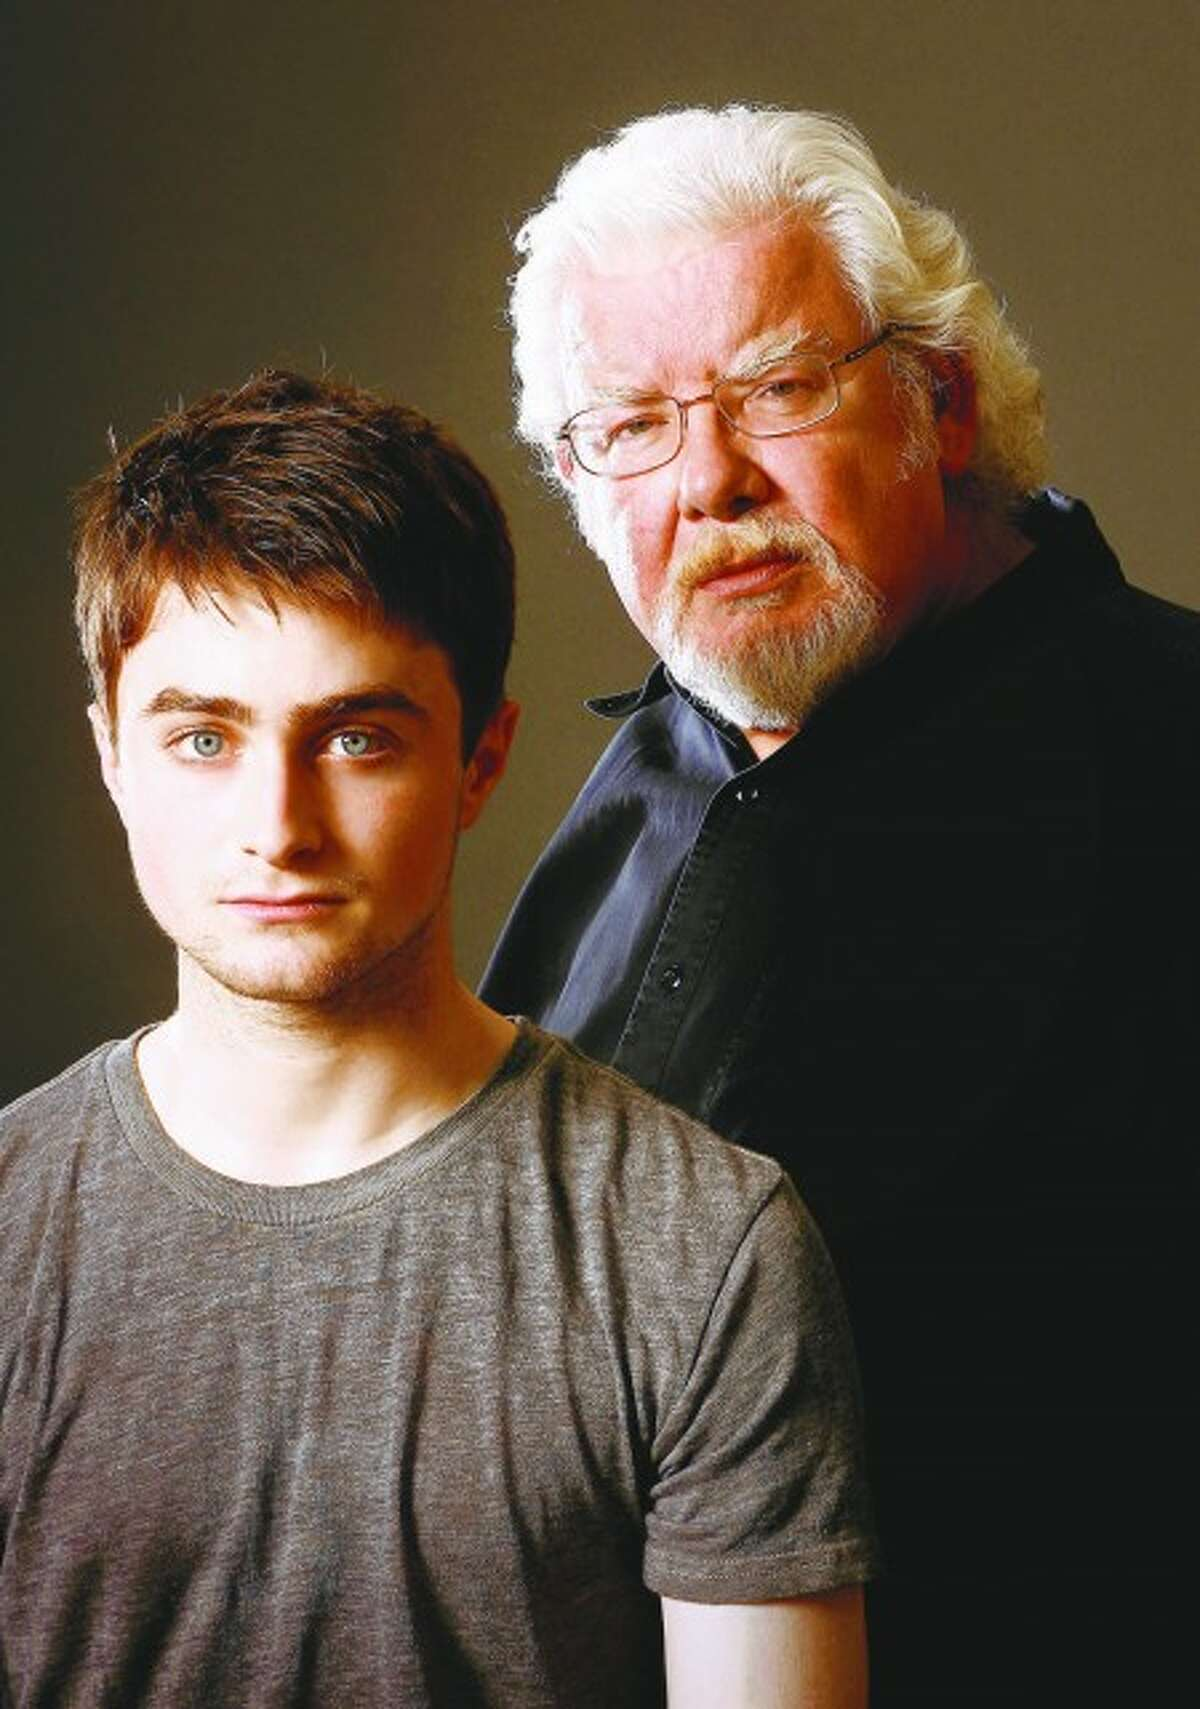 Daniel Radclife, left, is making his Broadway debut Sept. 5 with Richard Griffiths, right, in Equus at the Broadhurst Theatre.